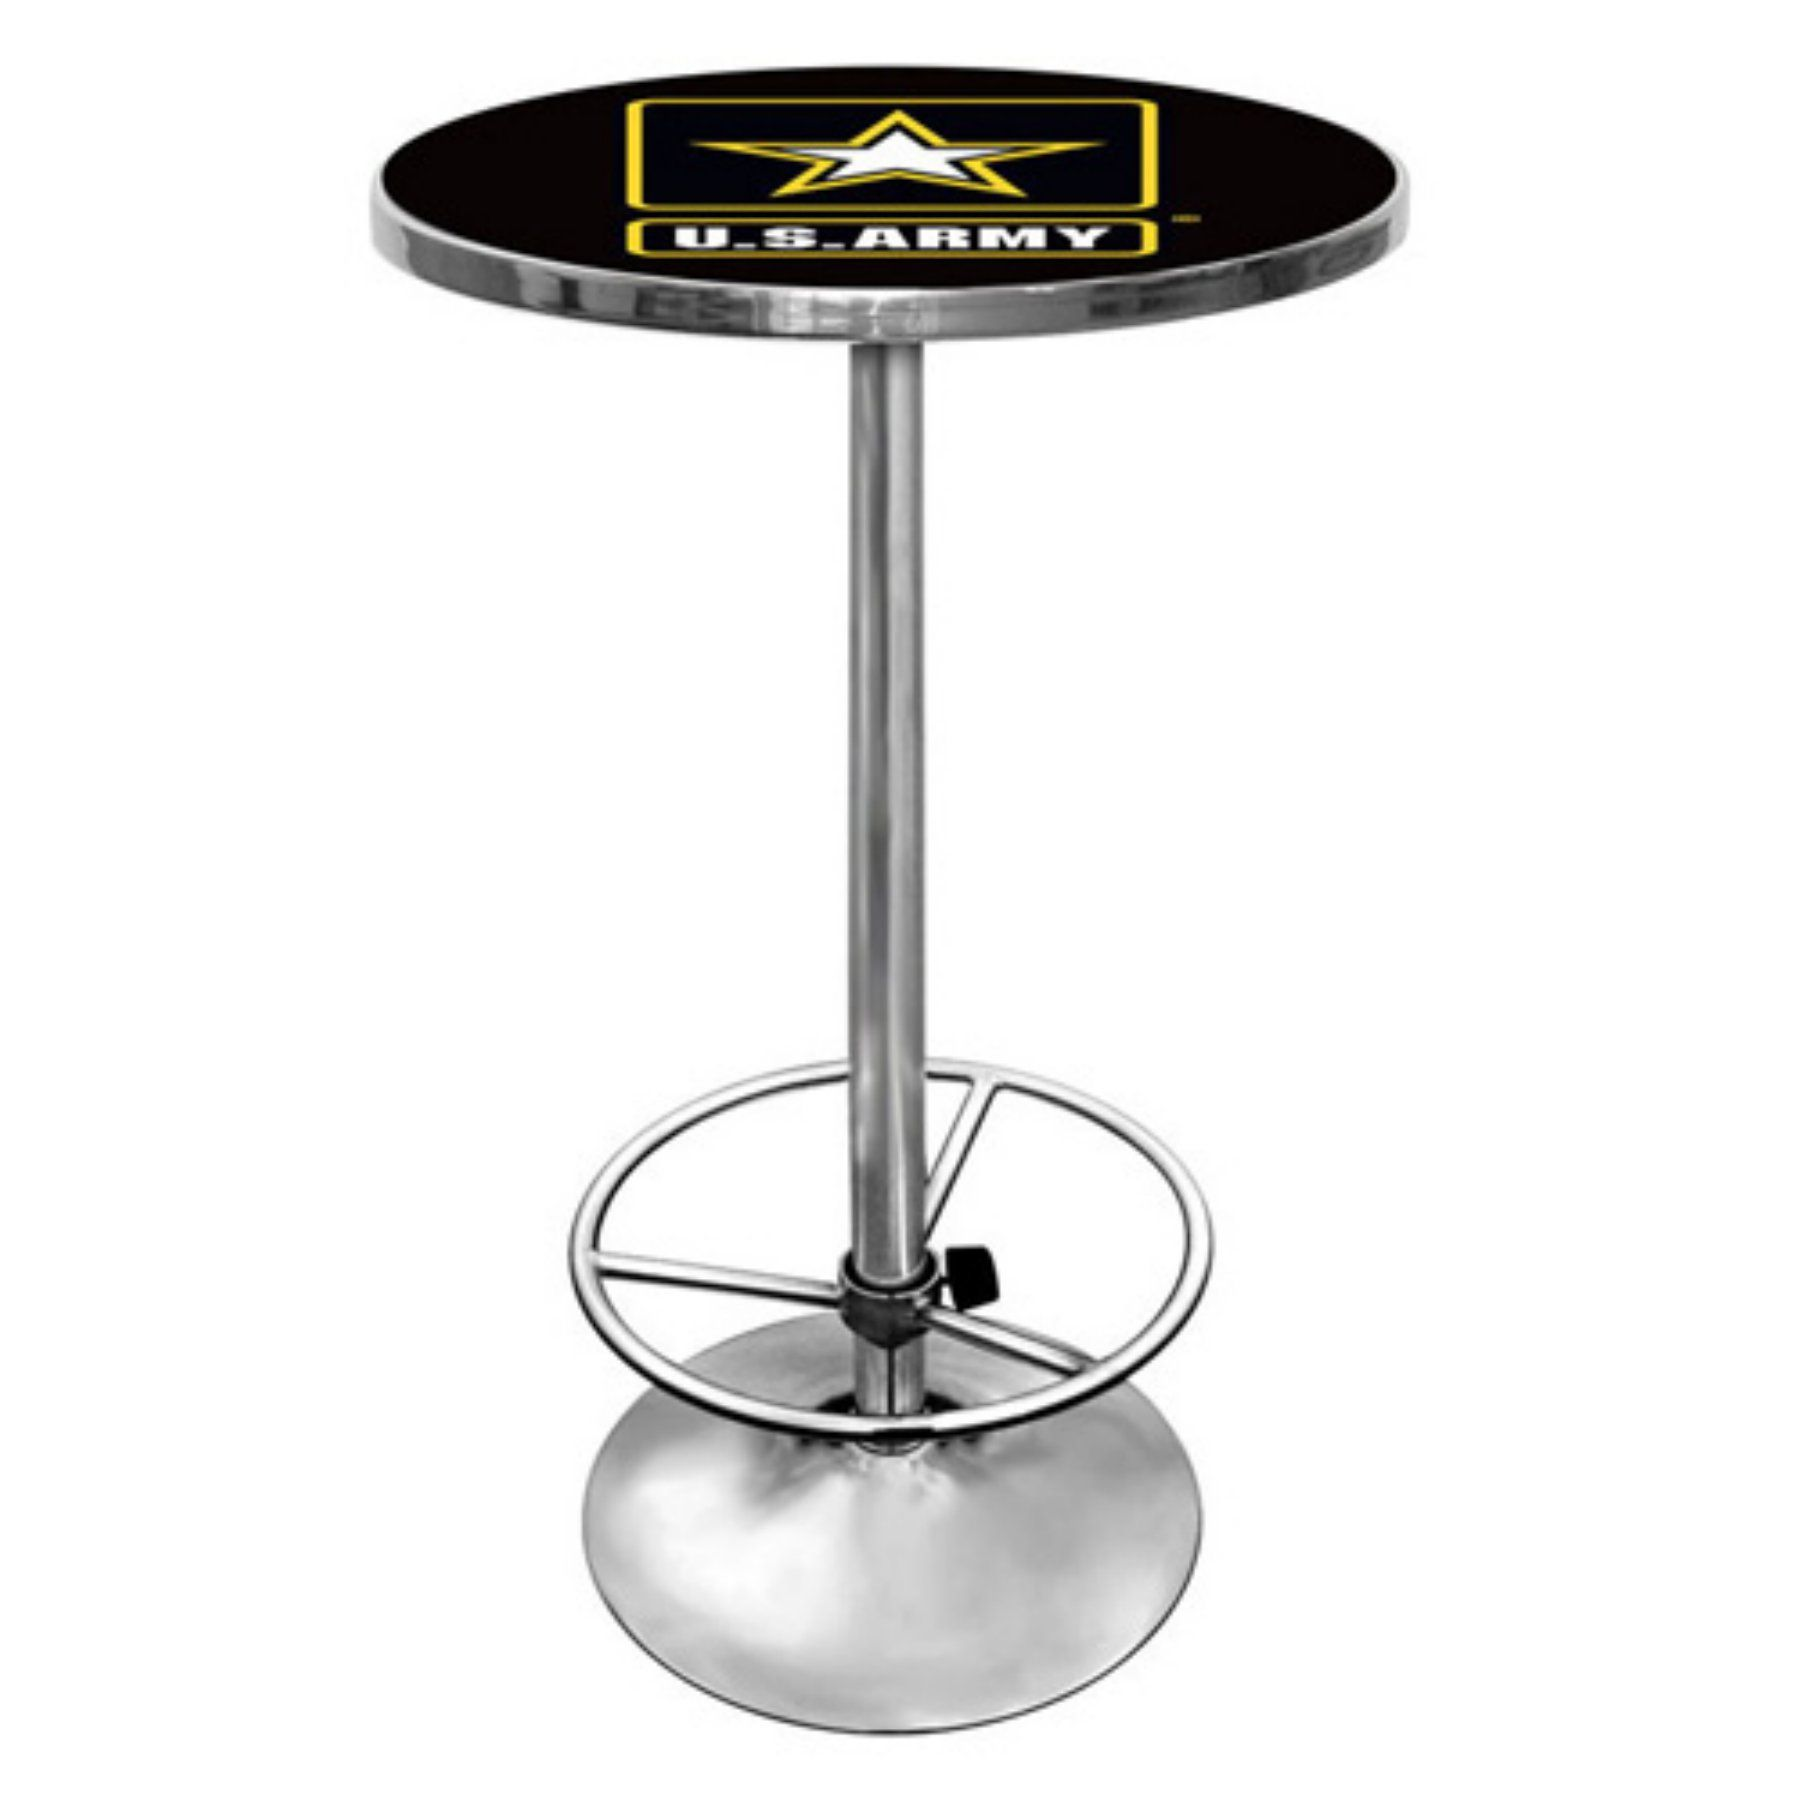 US Army Chrome Pub Table - ARMY2000   Chrome and Products